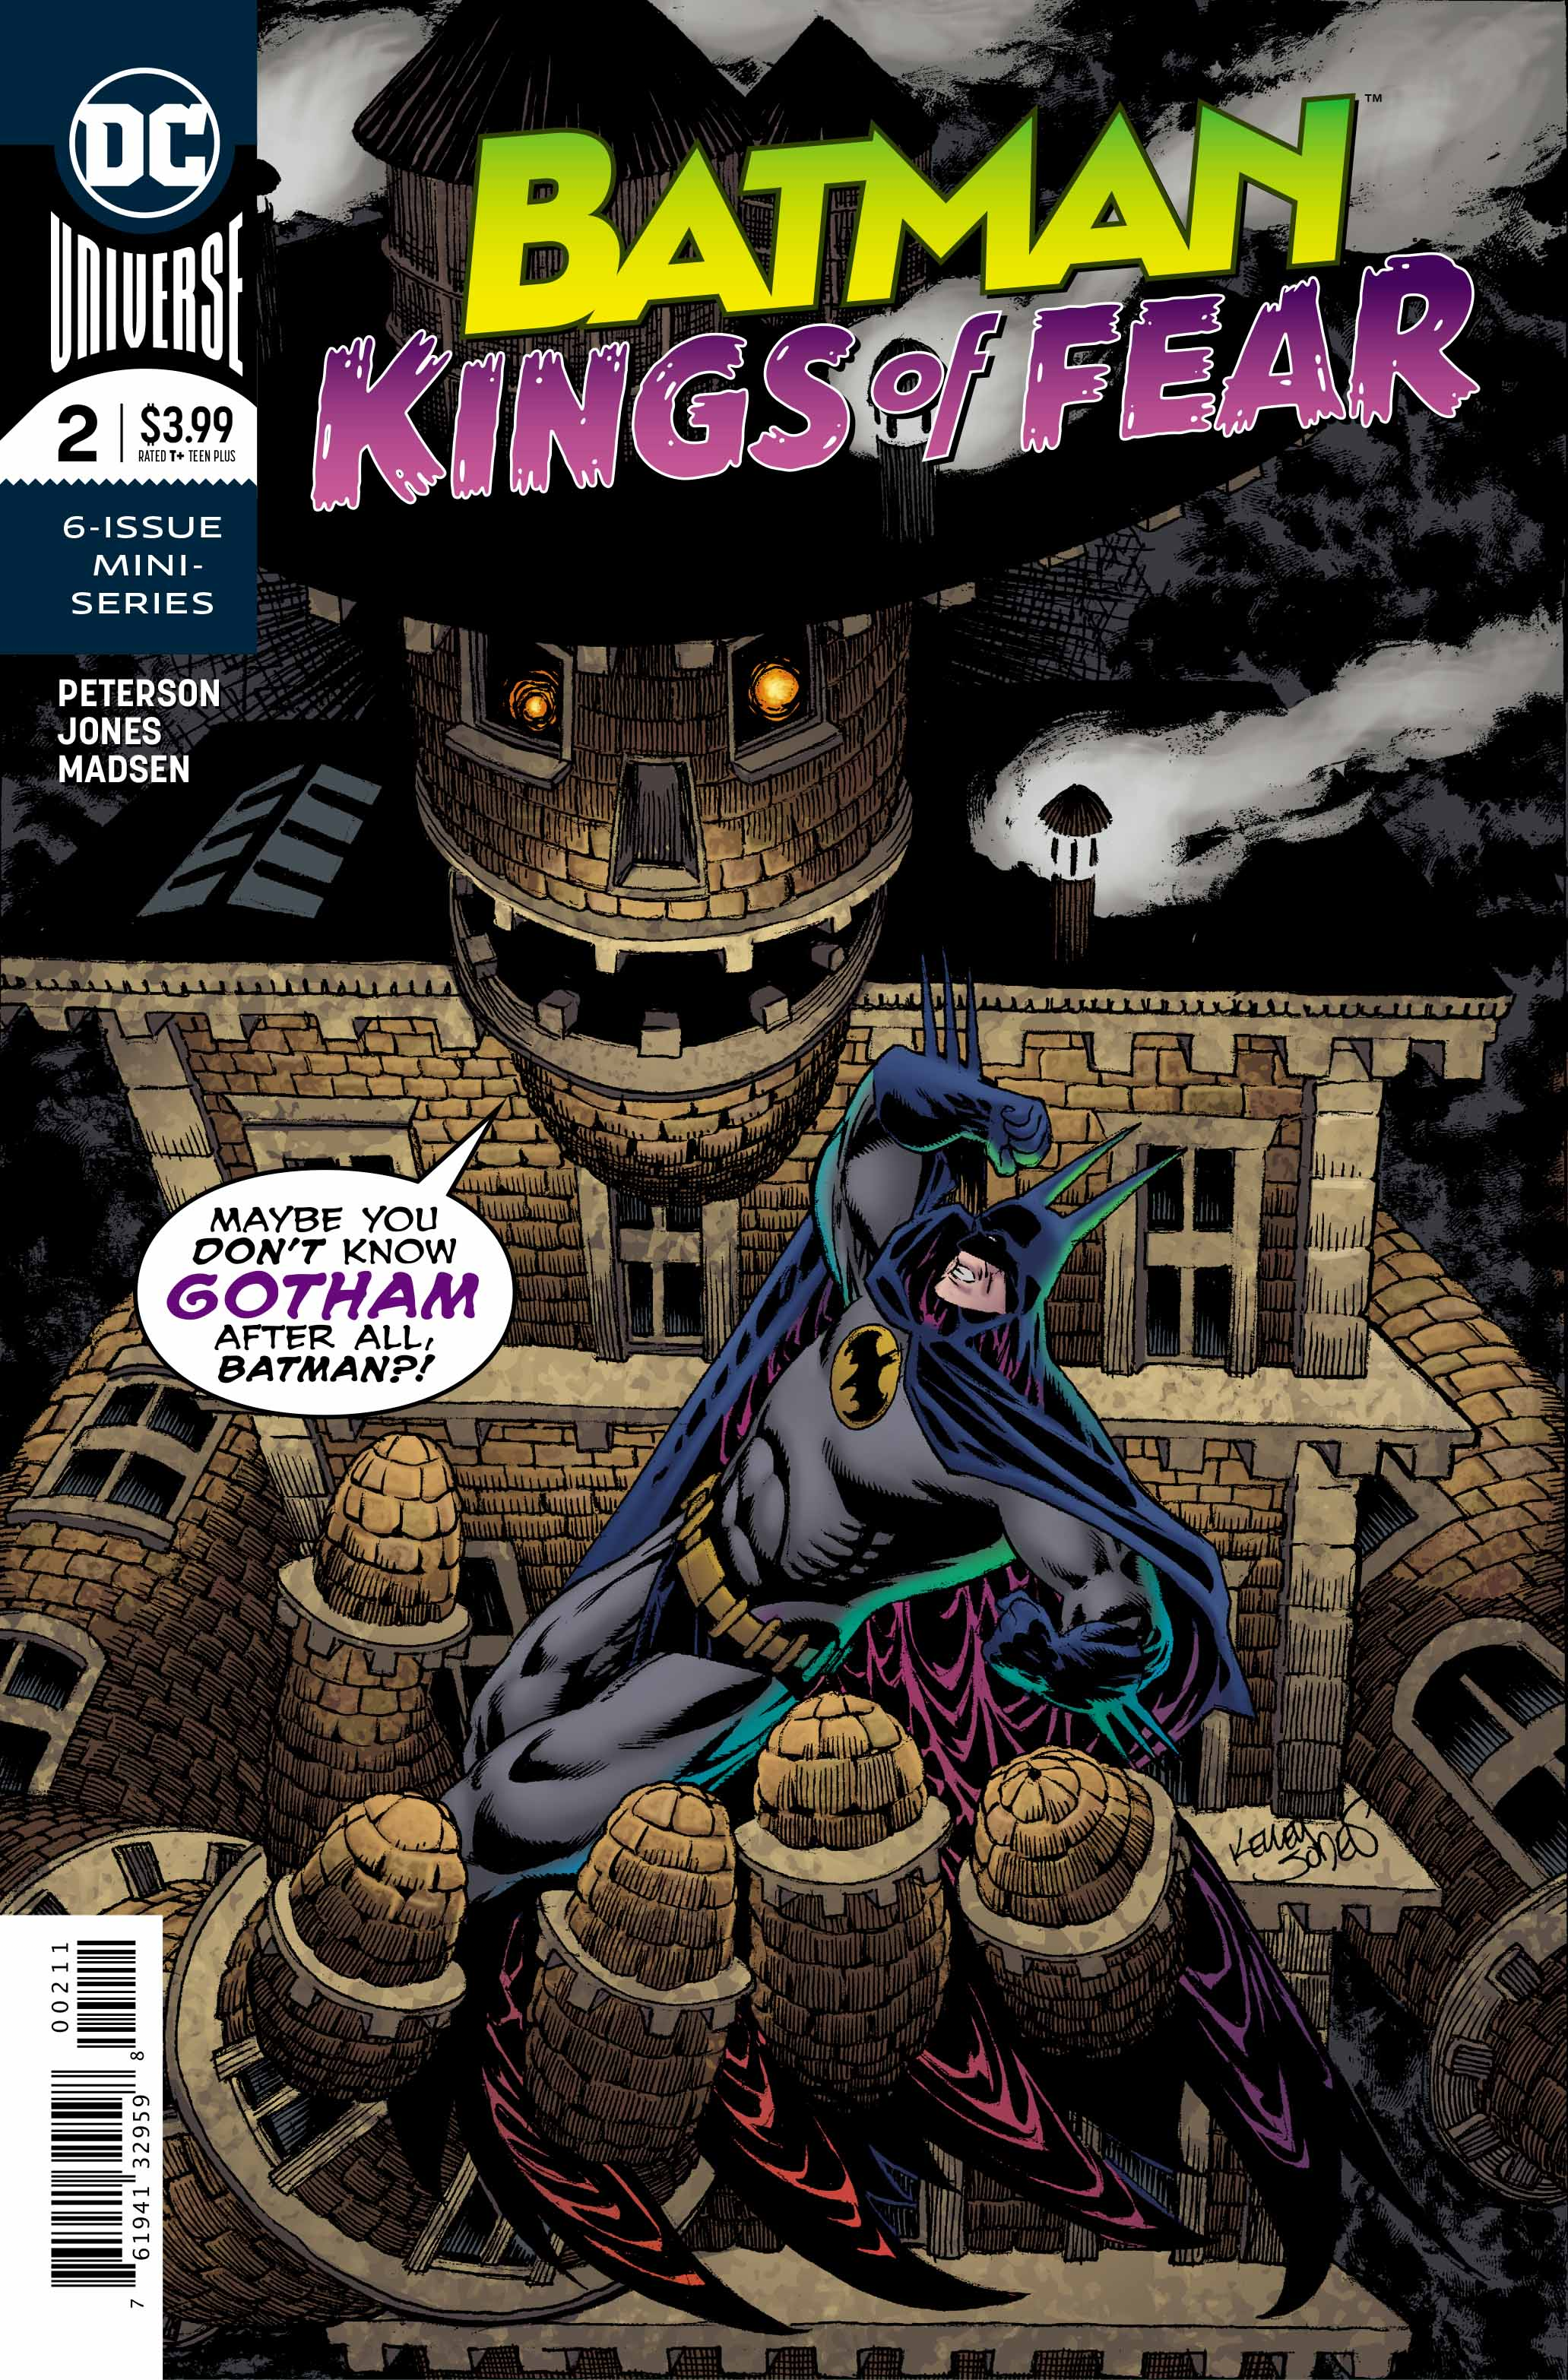 Scarecrow is loose in the streets of Gotham City, and Batman must drag him back to Arkham Asylum!